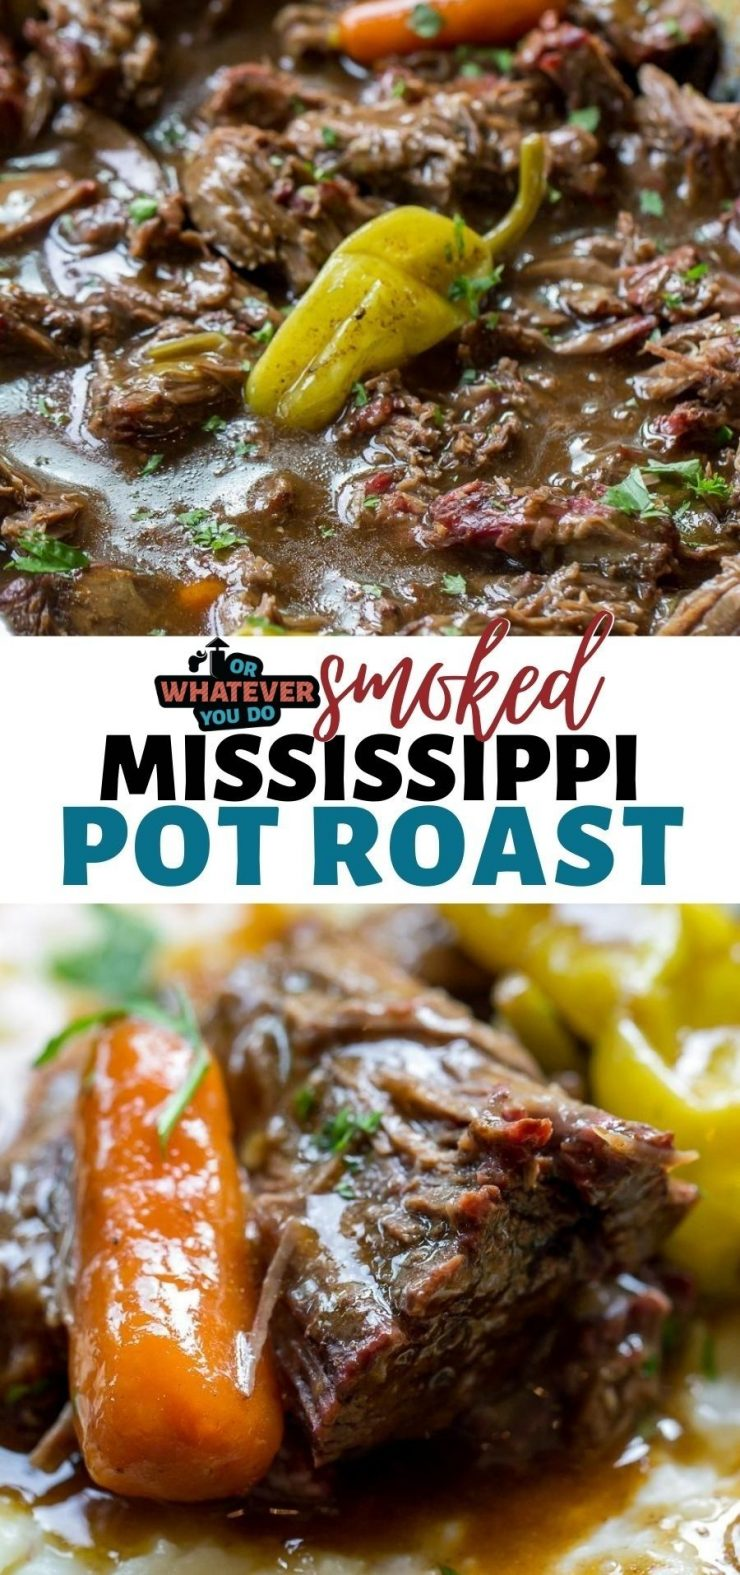 Traeger Smoked Mississippi Pot Roast